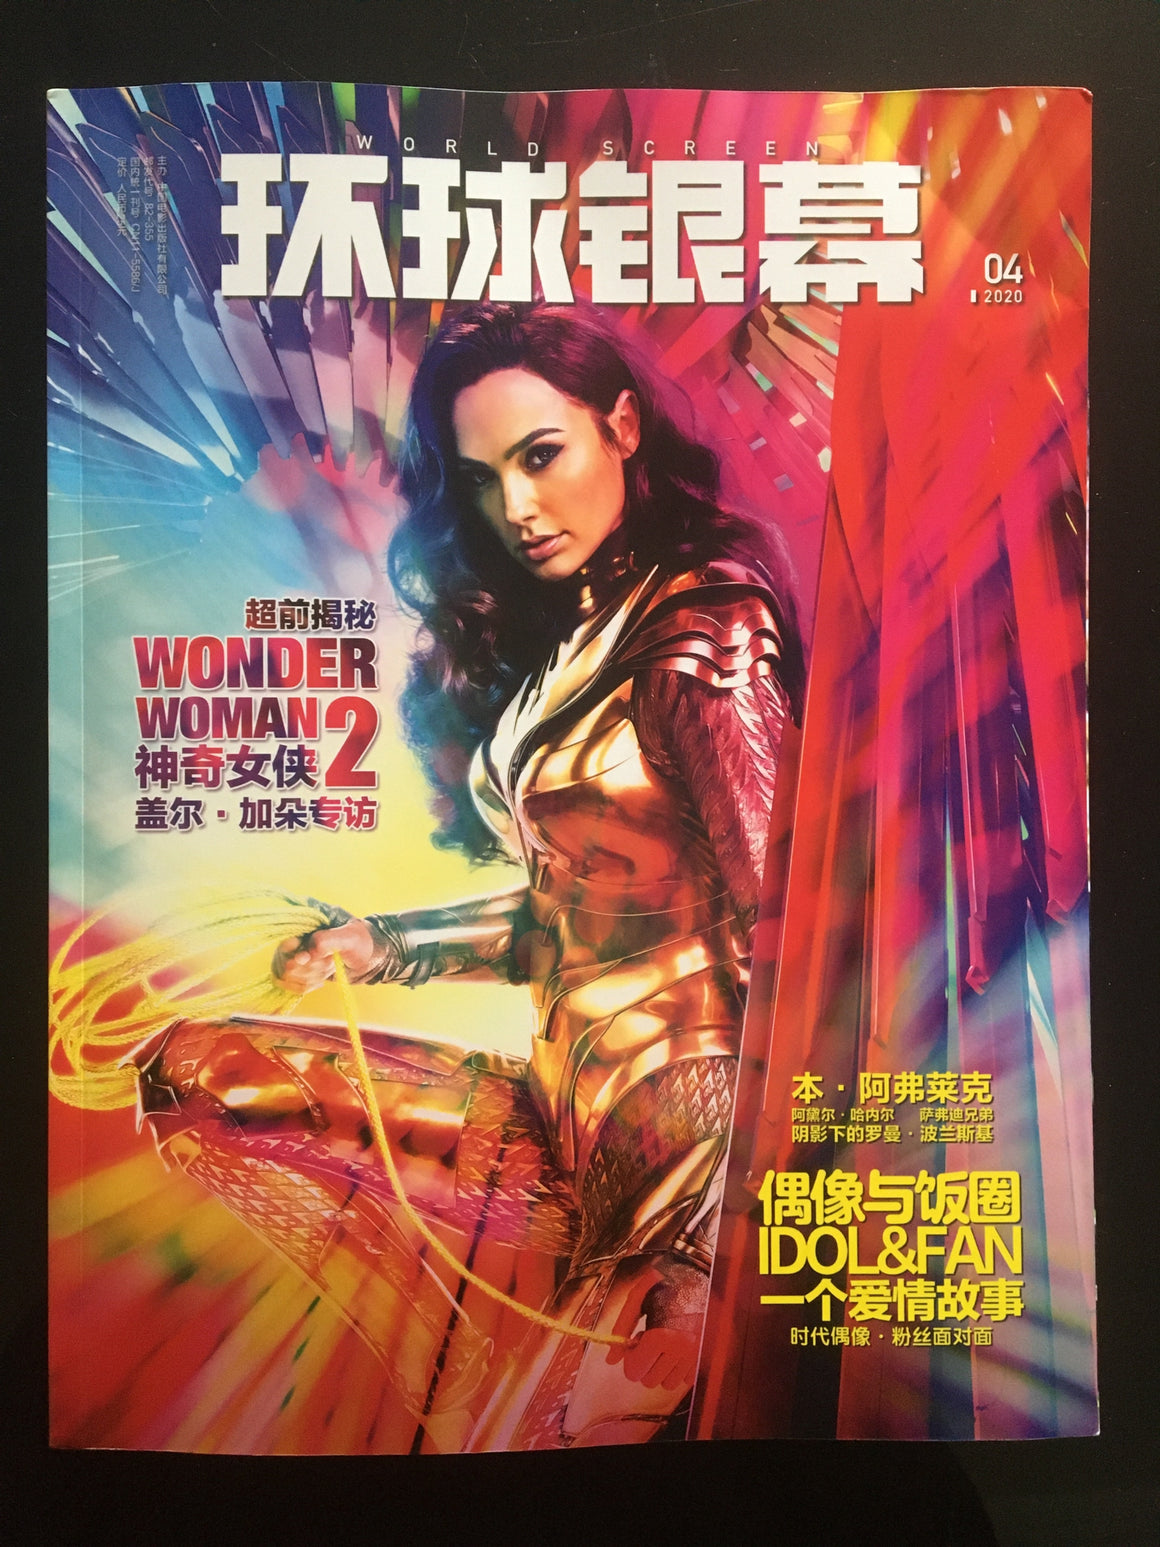 World Screen Magazine April 2020 Gal Gadot Wonder Woman 2